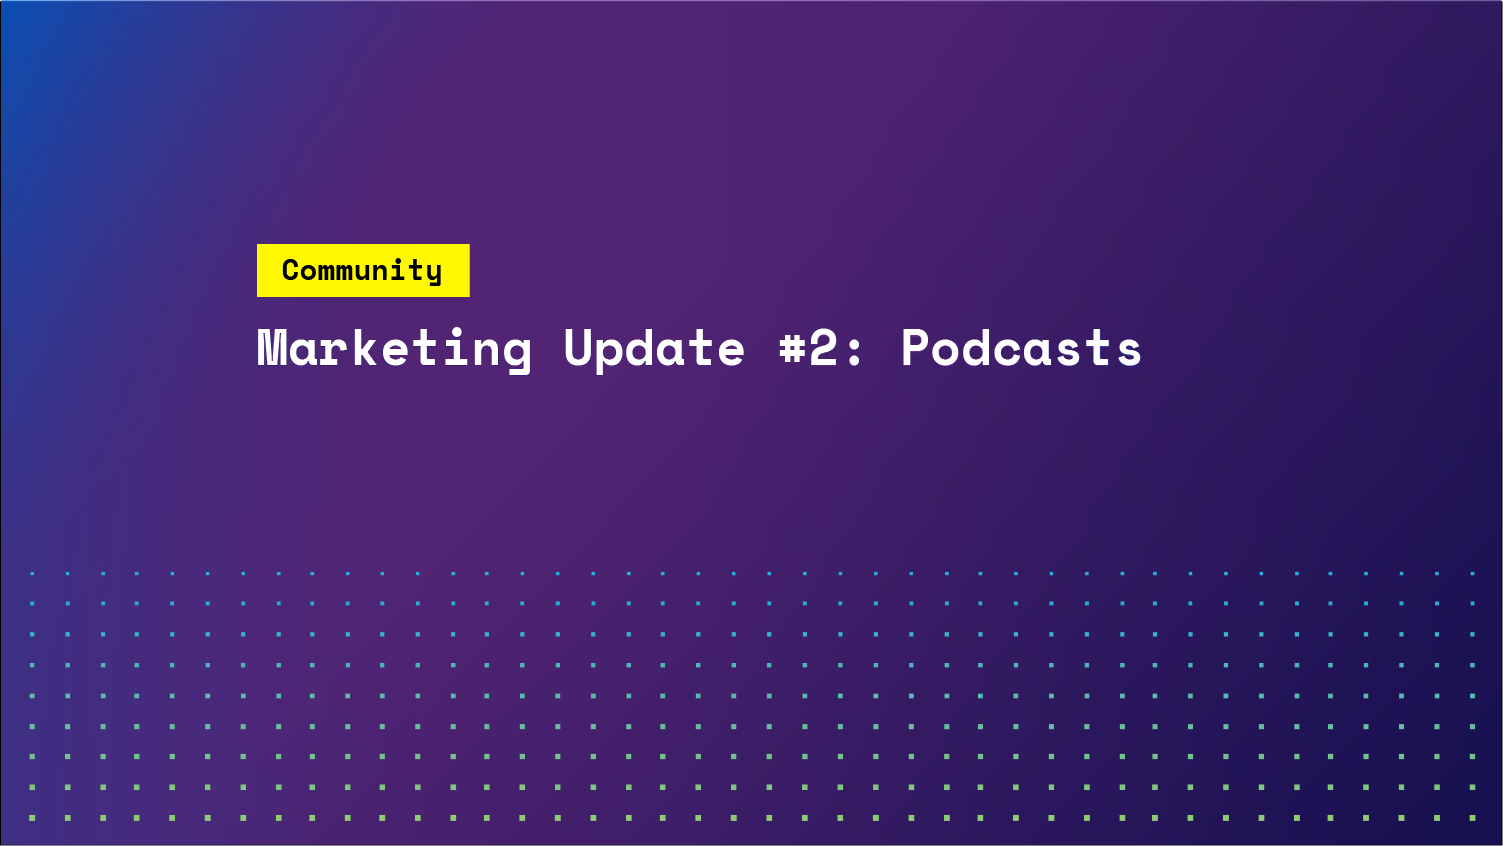 Marketing Update #2: Podcasts